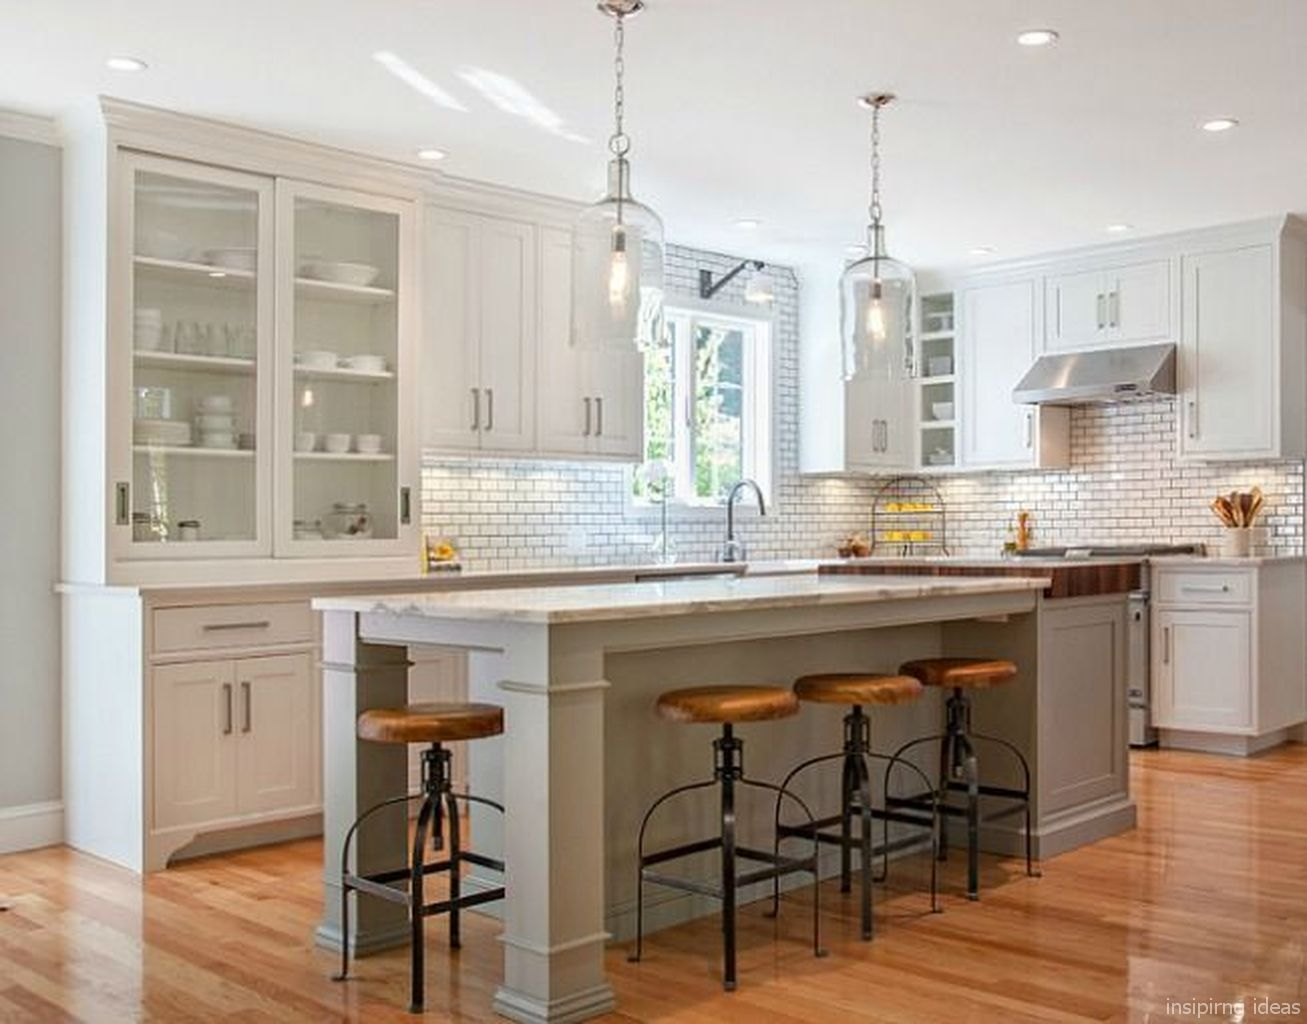 beautiful modern farmhouse kitchen backsplash ideas 77 on country farmhouse exterior paint colors 2021 id=82550